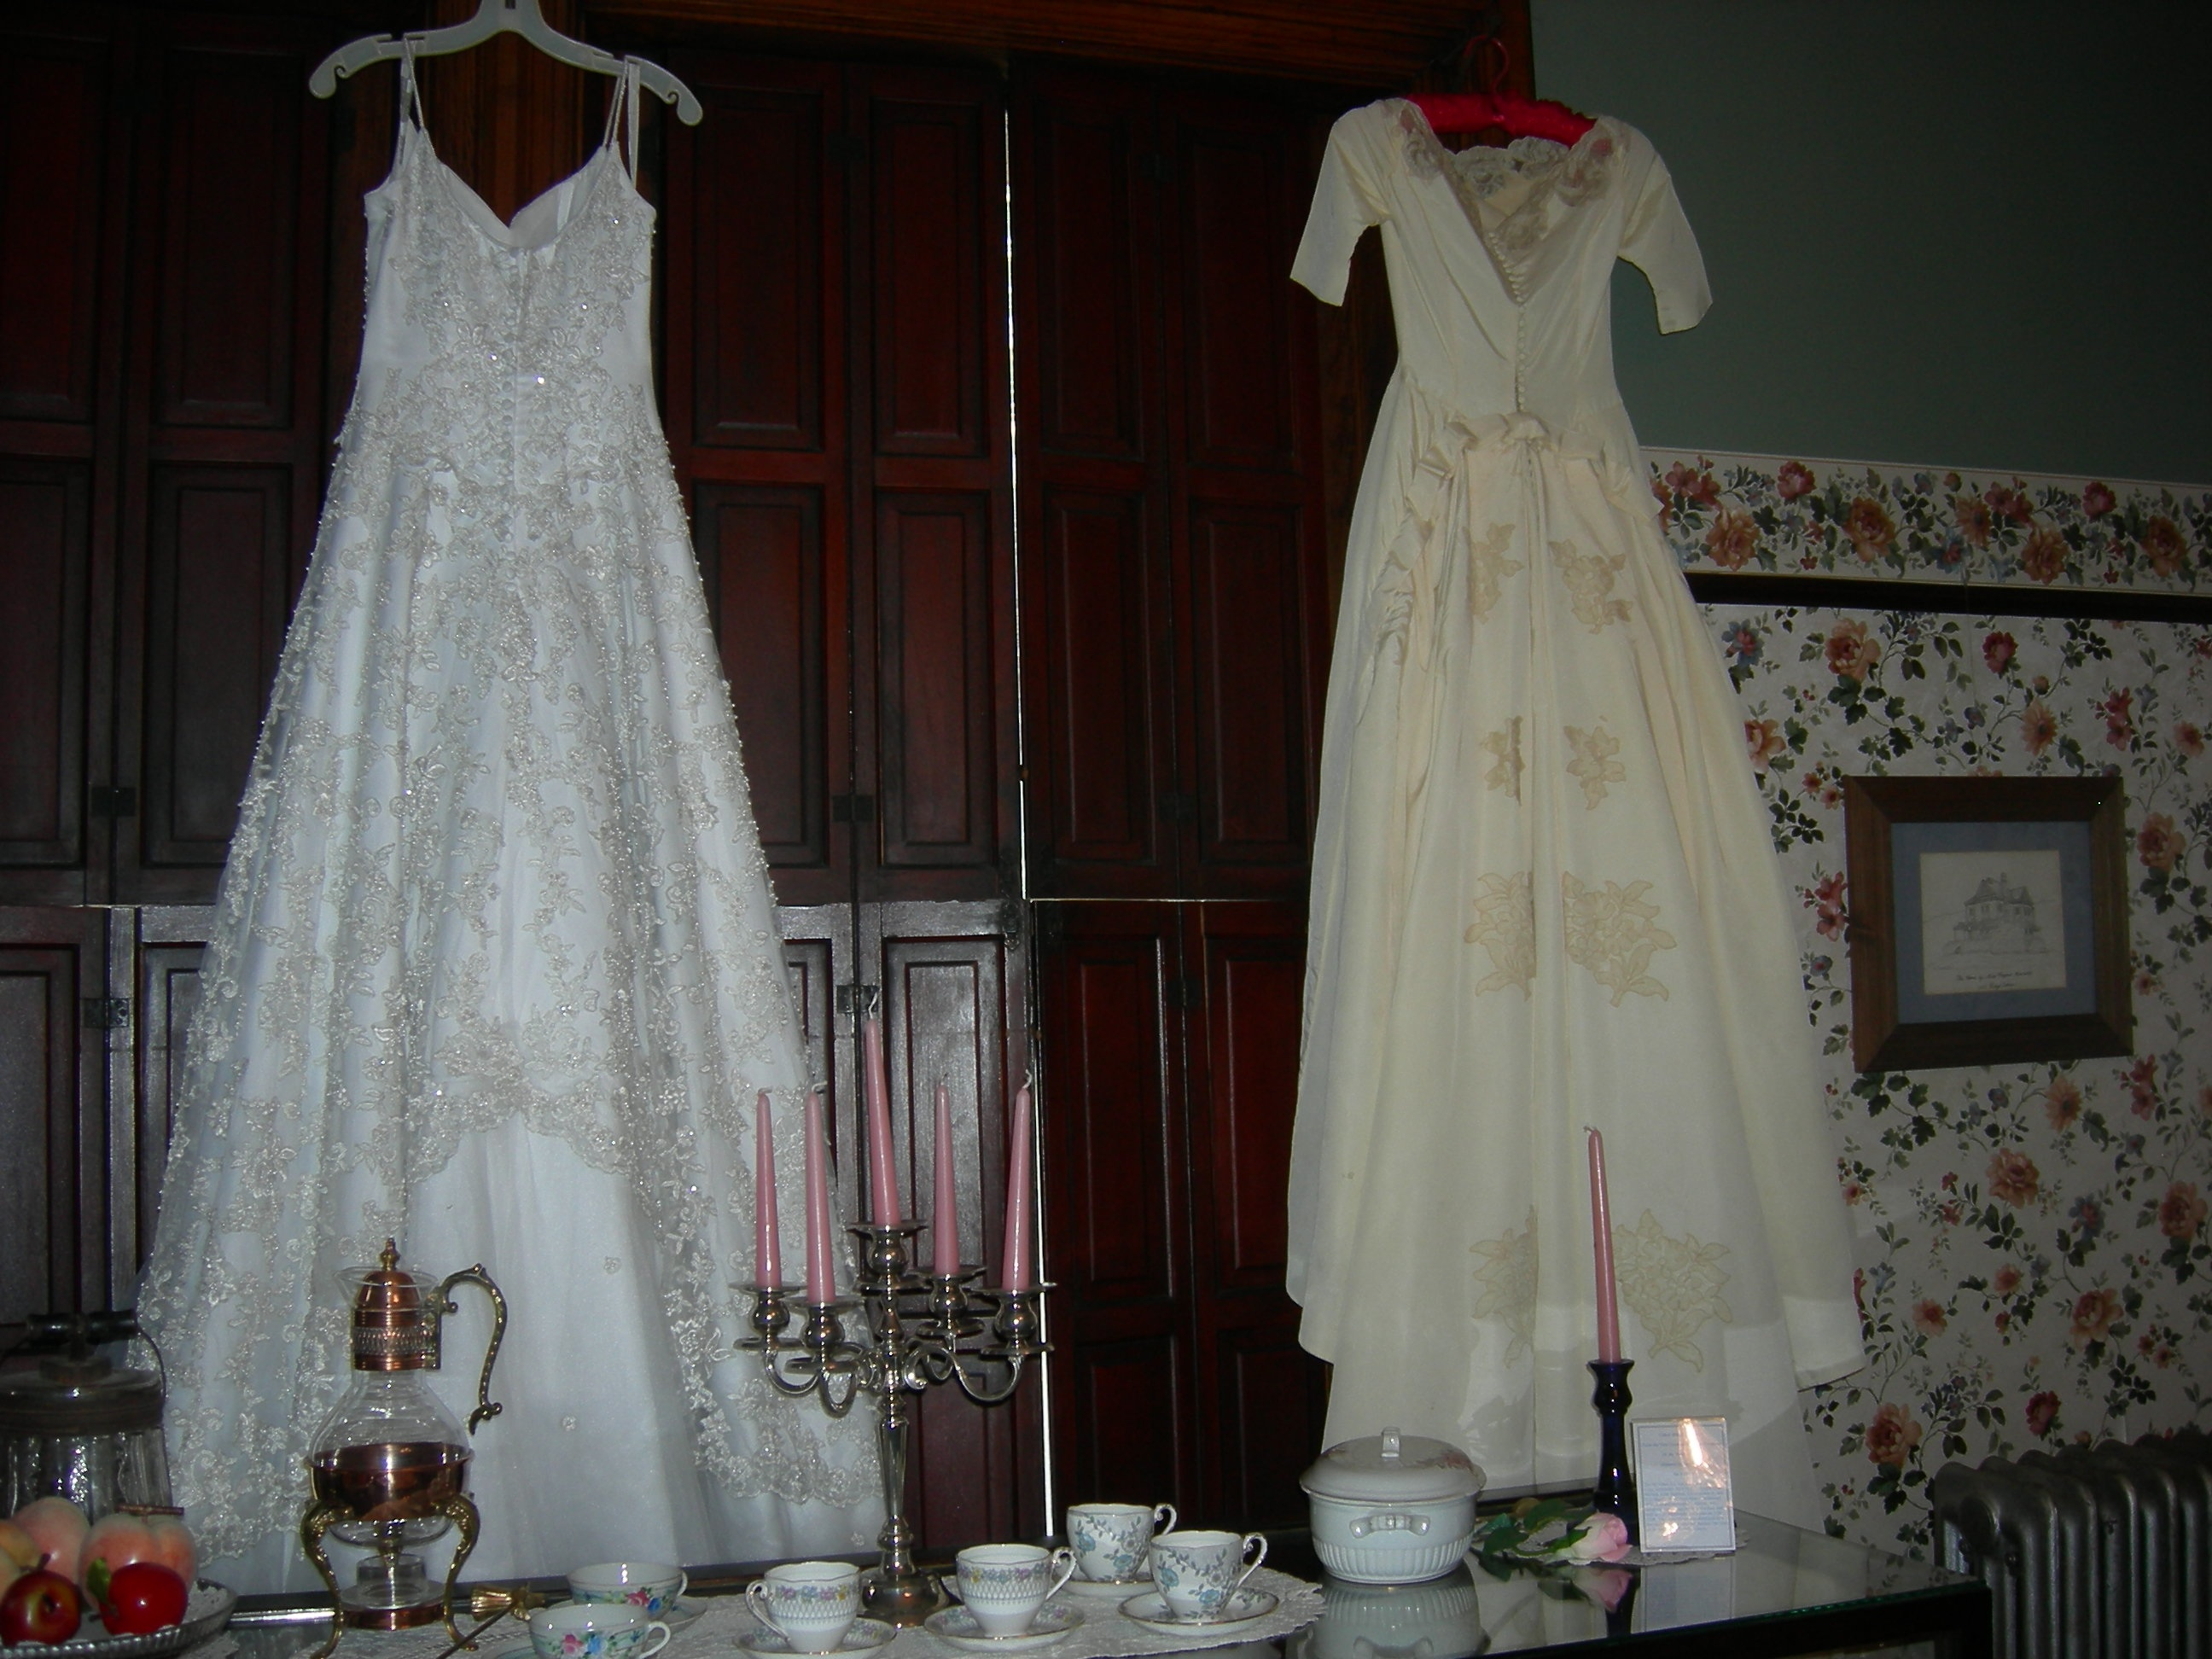 wedding dresses in dining room, south wall